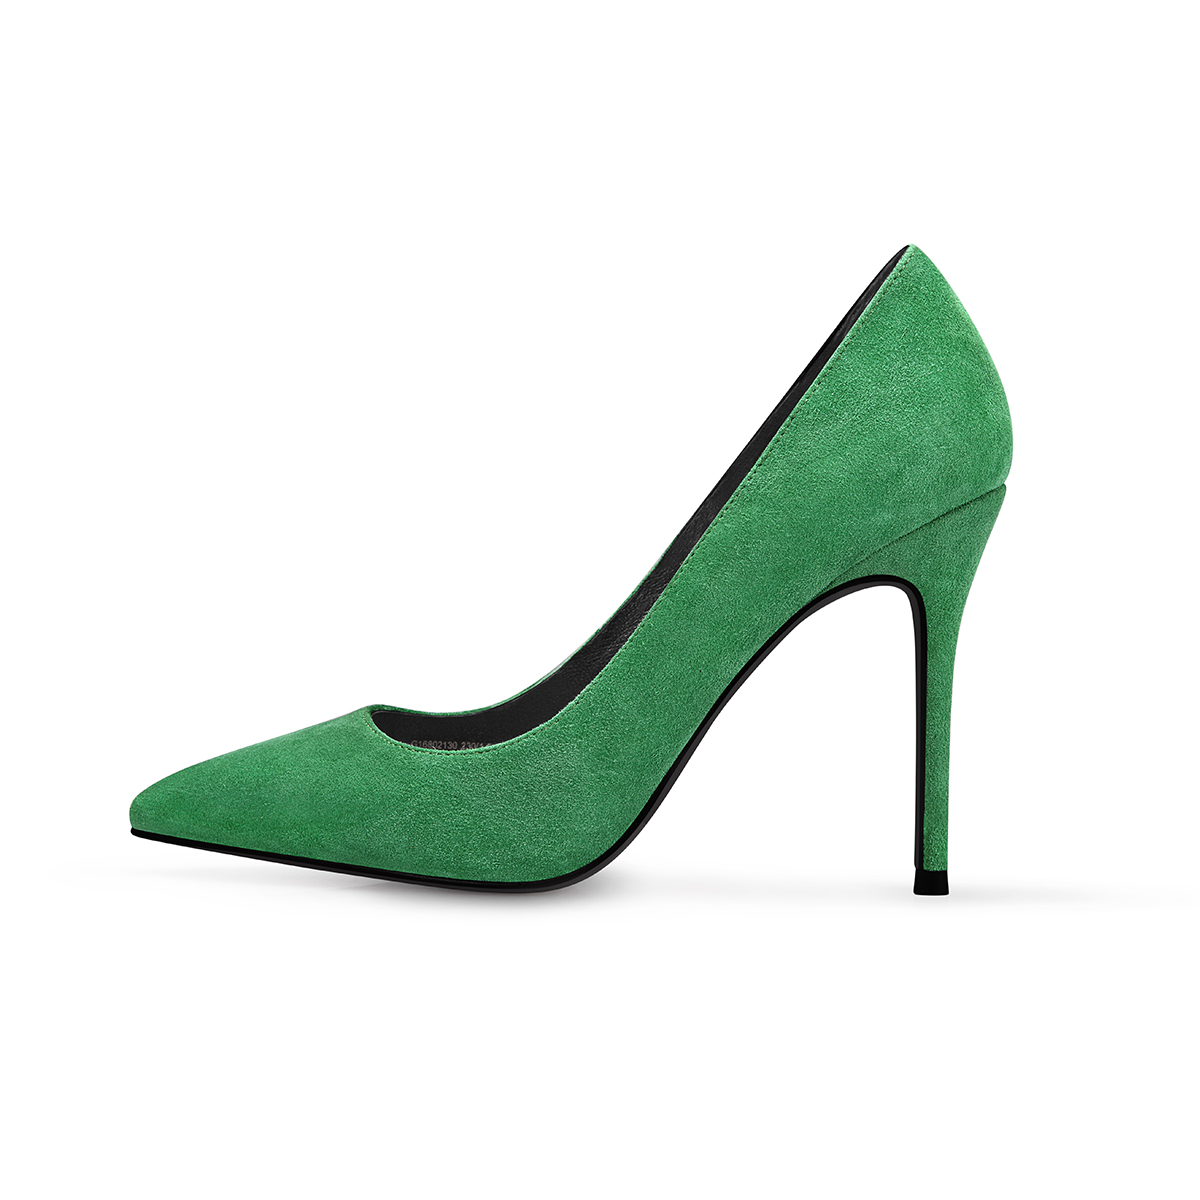 GAOZZE Green Suede Leather Women Sexy Pointed Toe High Heel Shoes Fashion Party Shoes Pumps Women Wedding Shoes 2018 Spring New